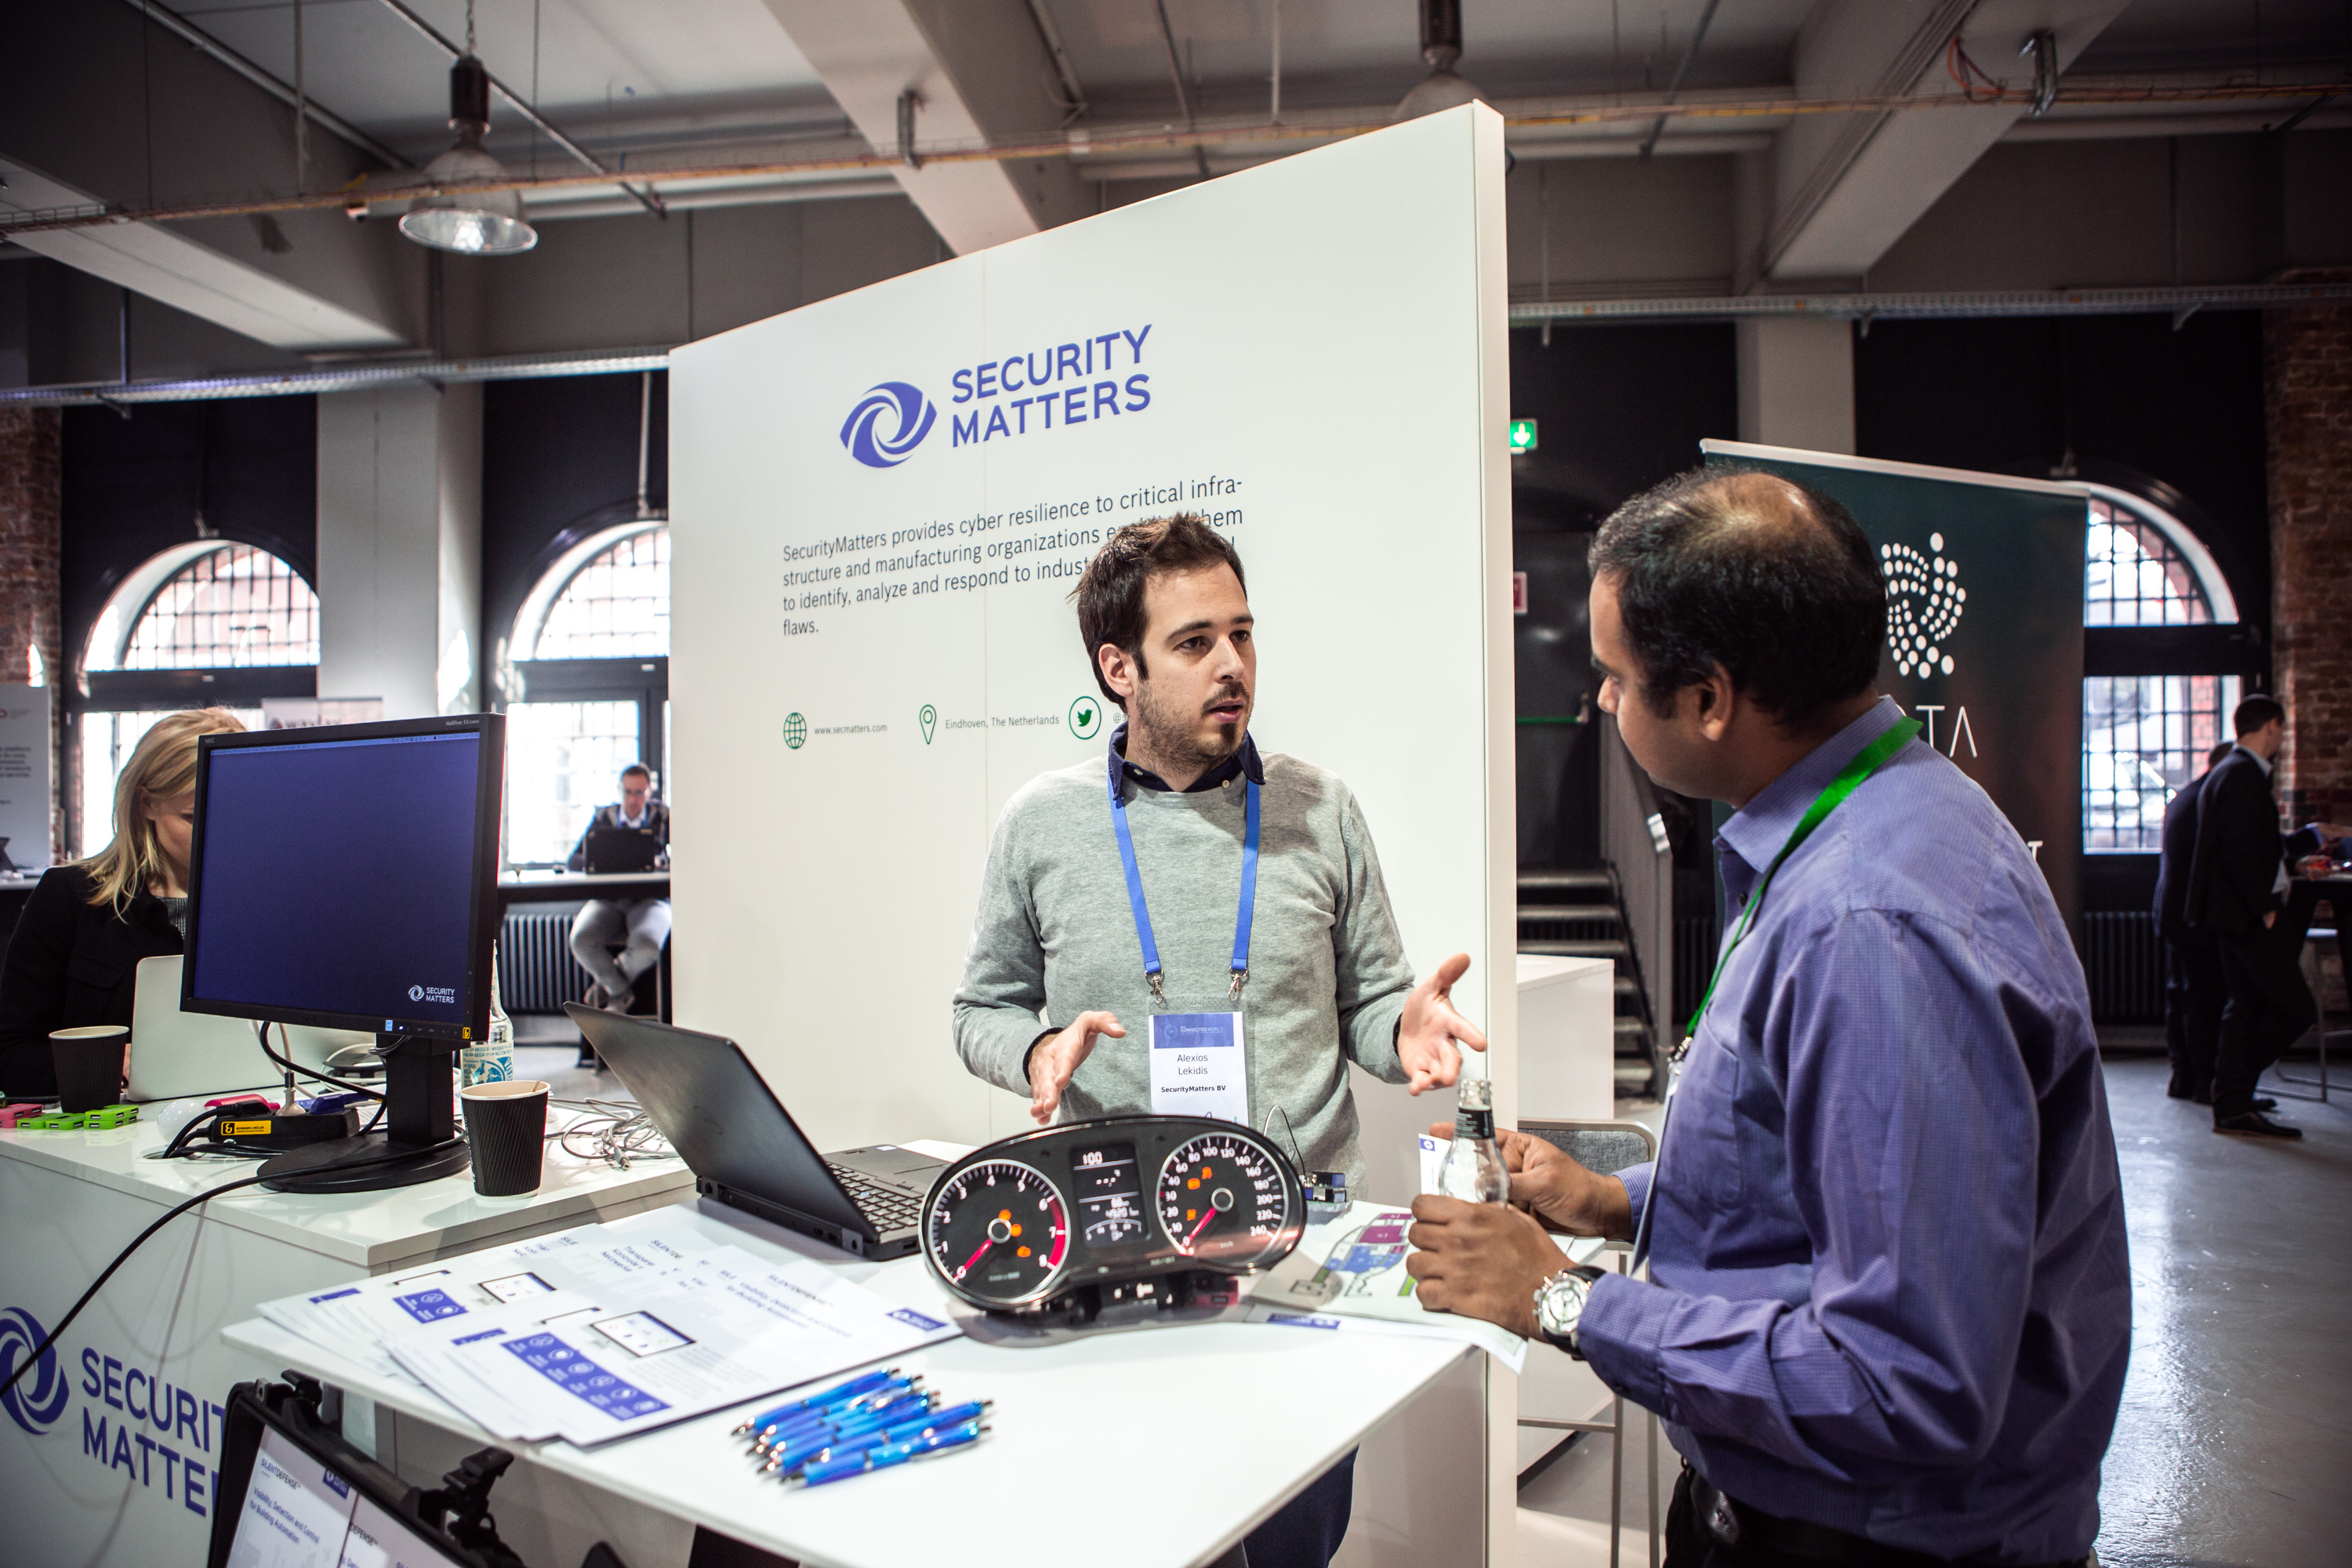 SecurityMatters exhibiting at the BoschConnectedWorld 2018